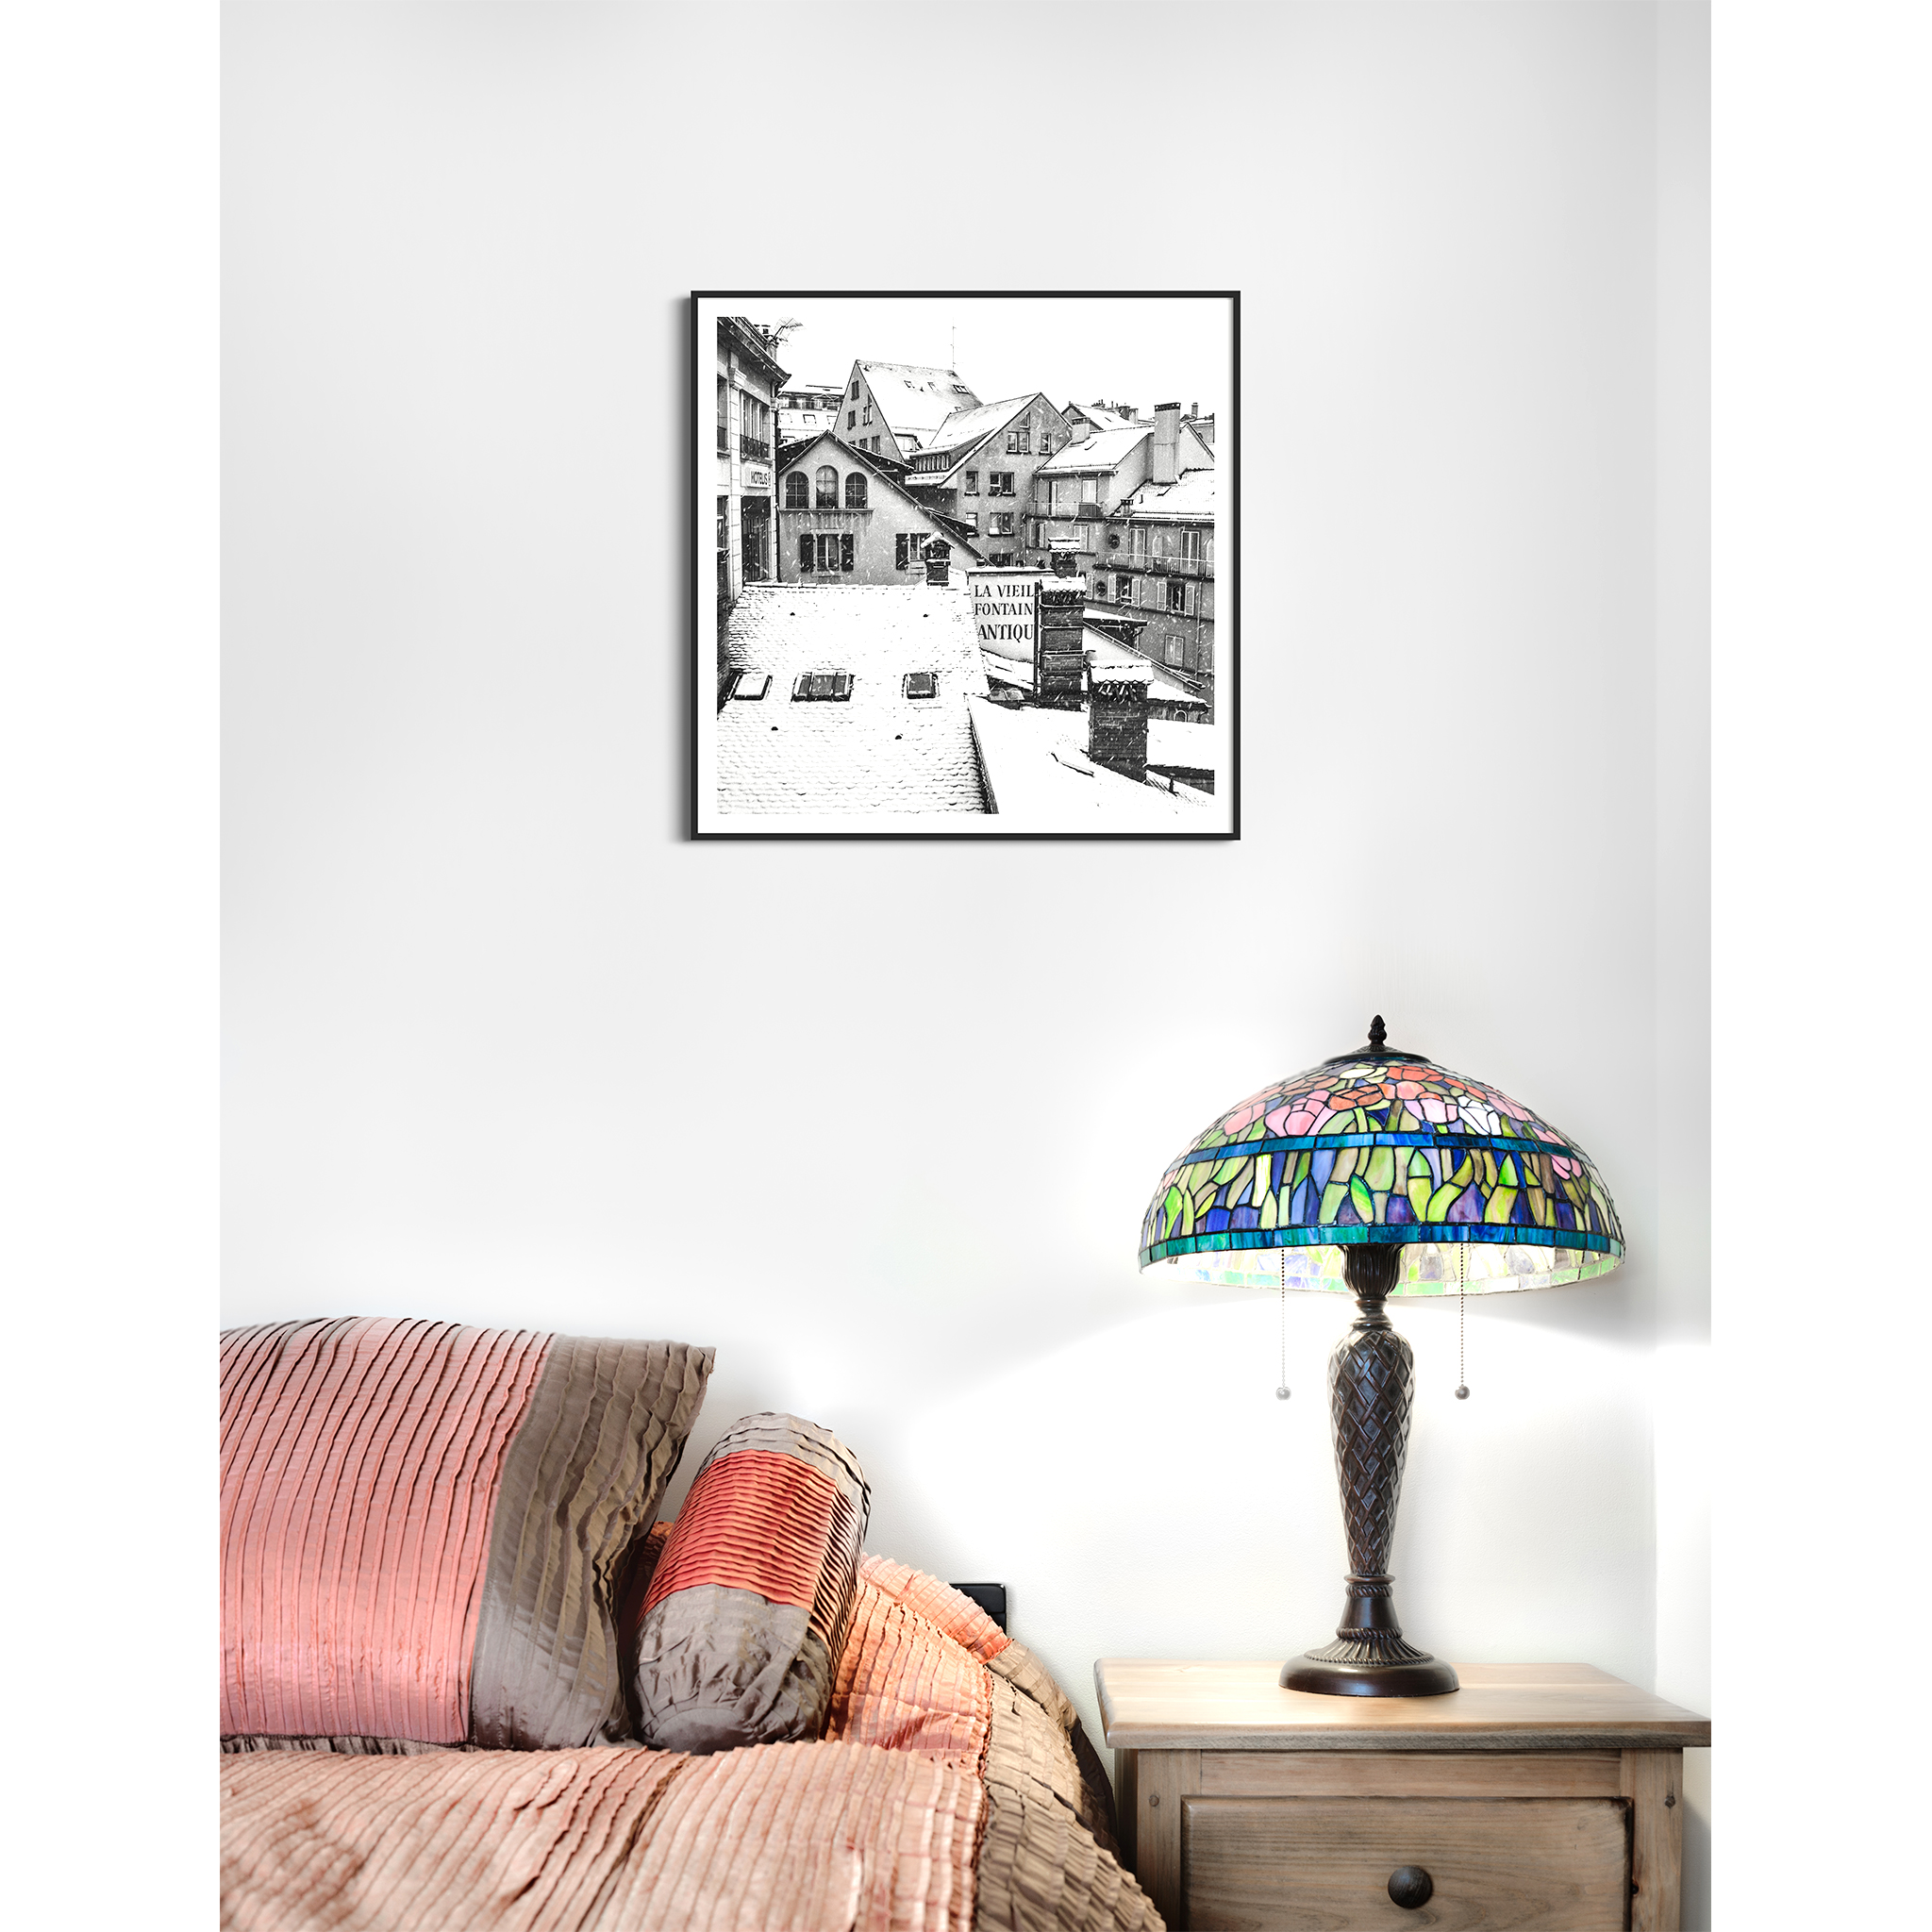 Snowy Day in Lausanne black and white print in black frame with border on the wall